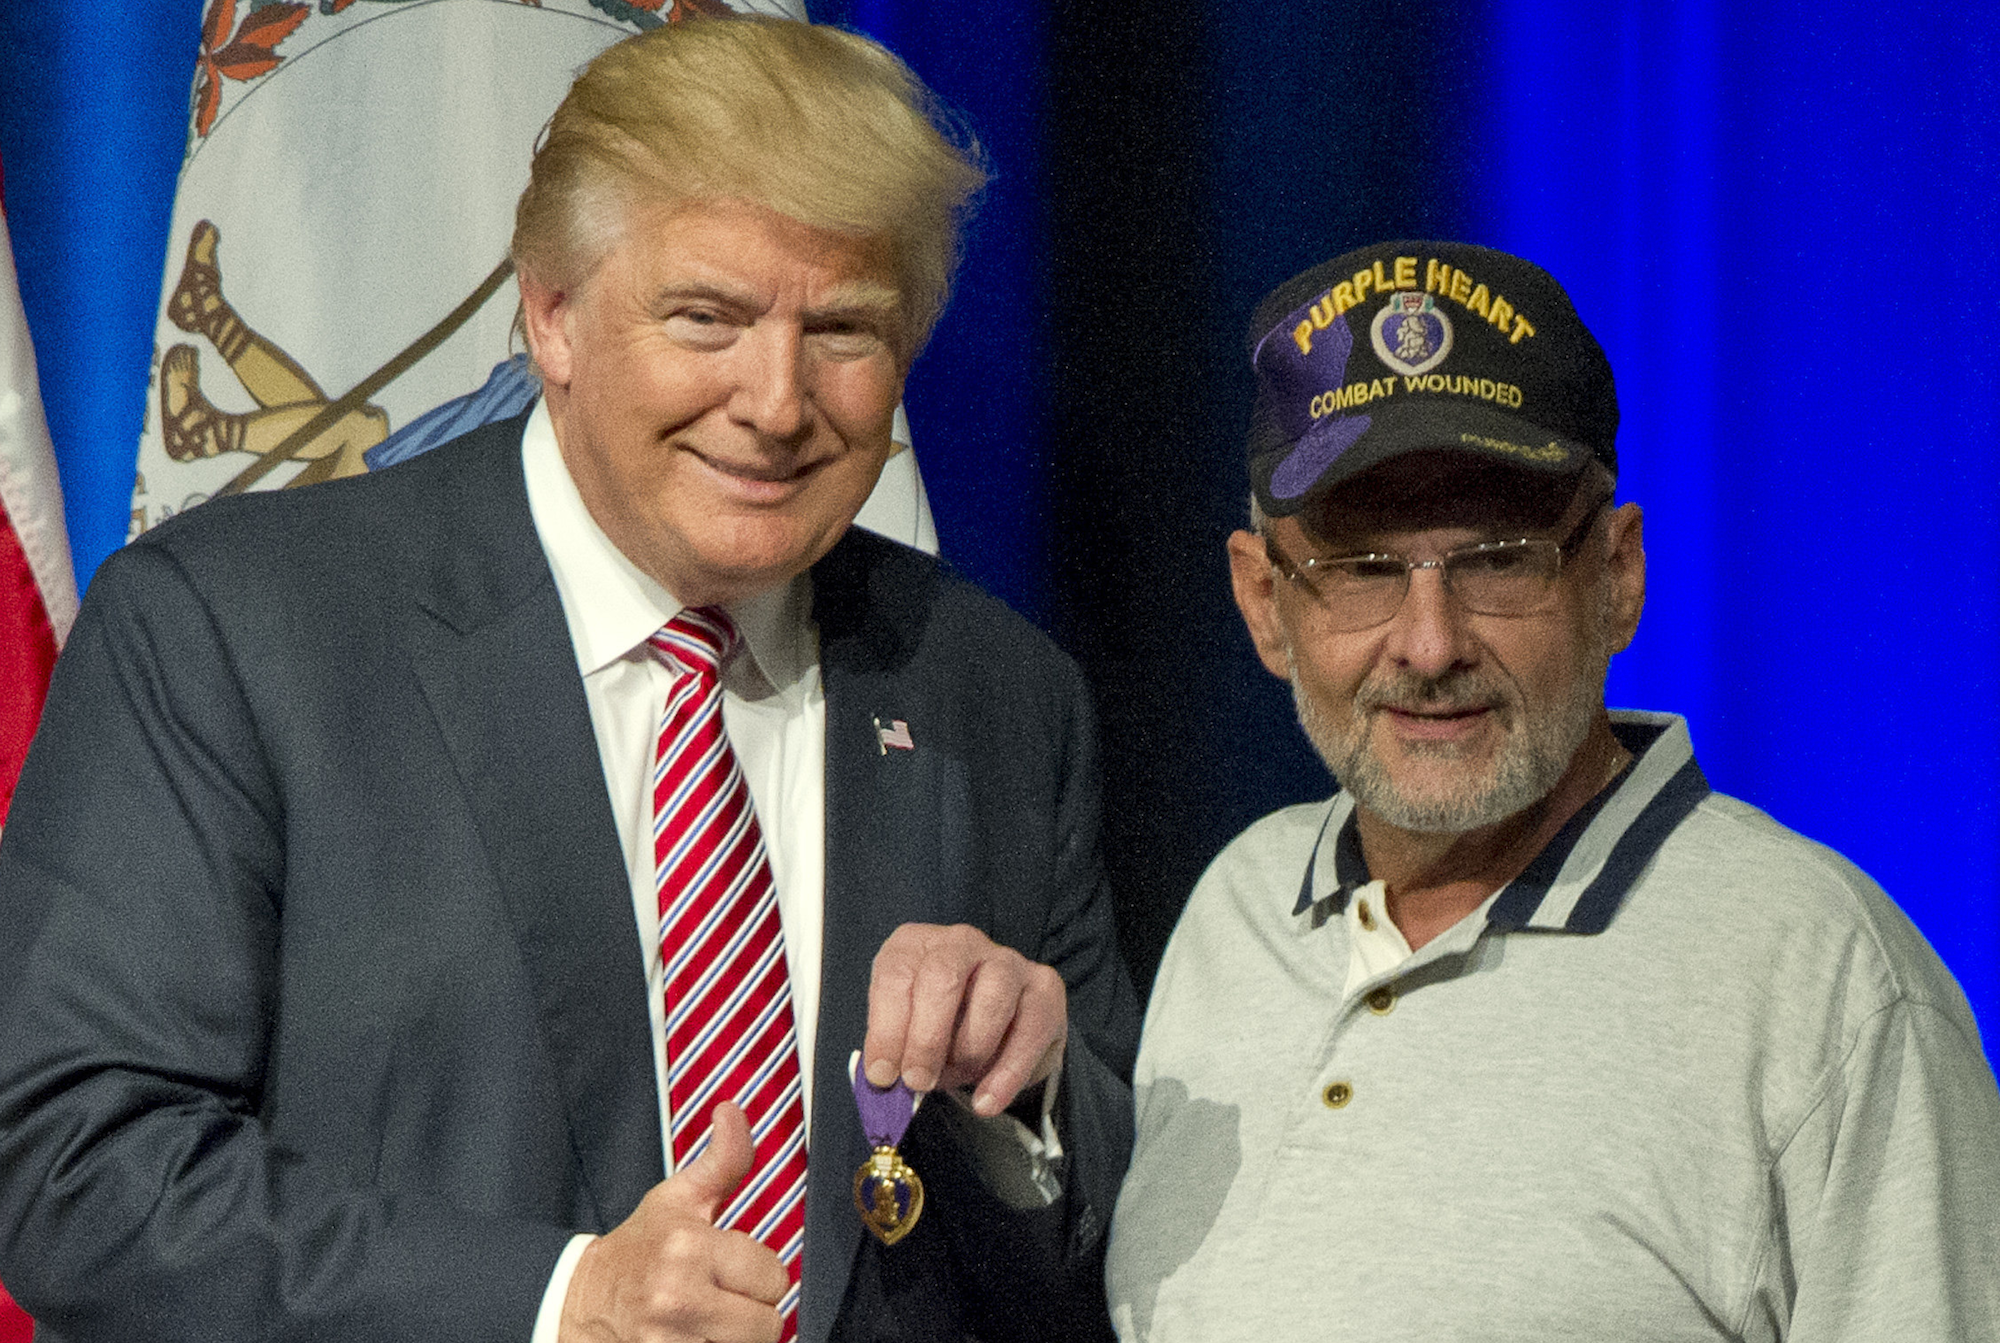 Trump Receives Purple Heart from Vet. Hmm, What Should Hillary Receive? [VIDEOS]